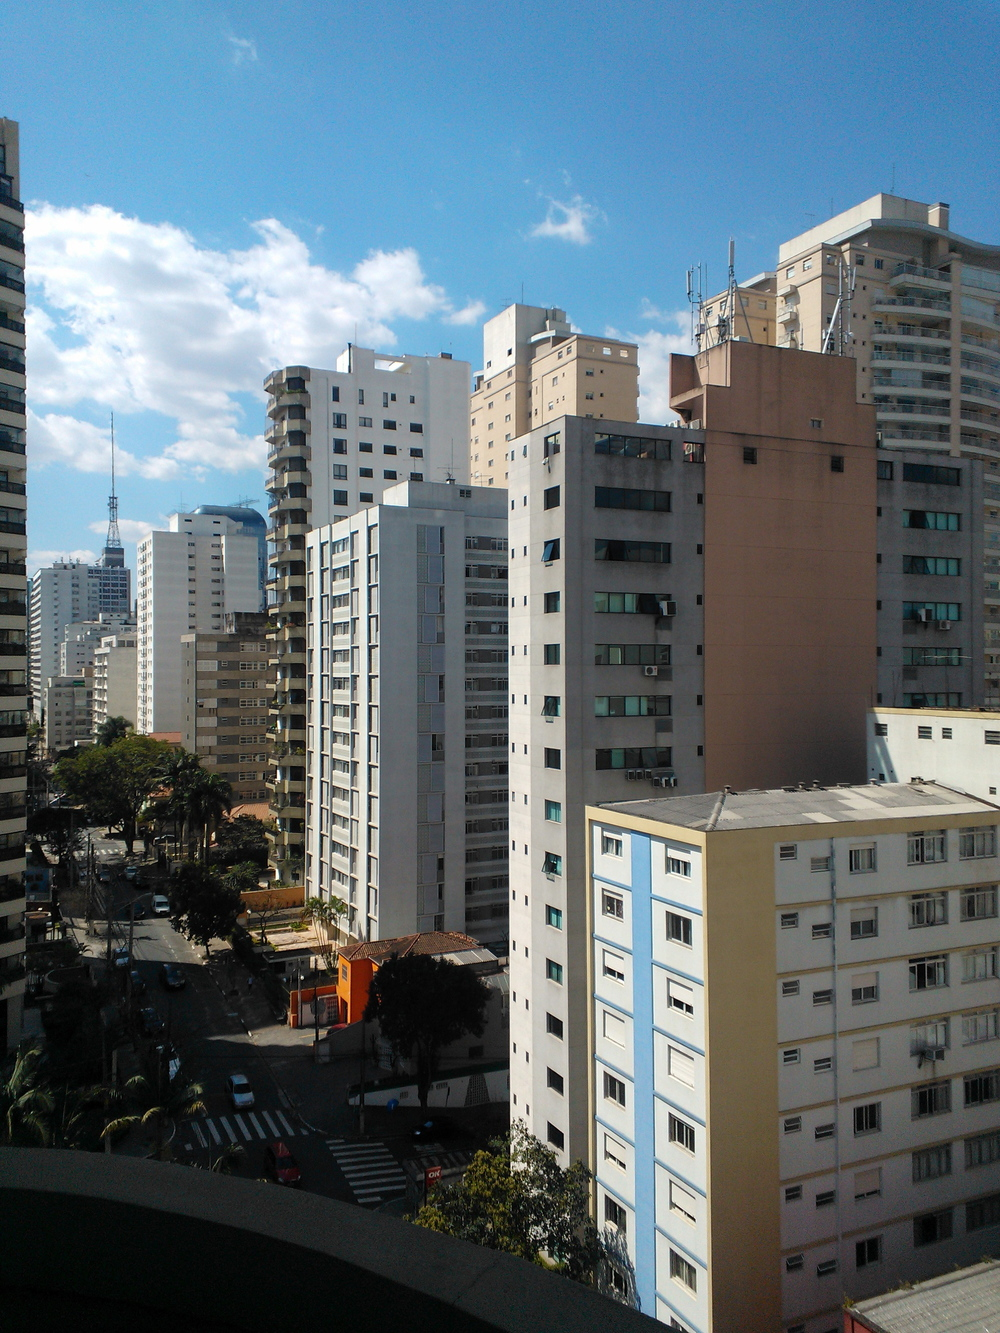 This is the street I grew up in São Paulo